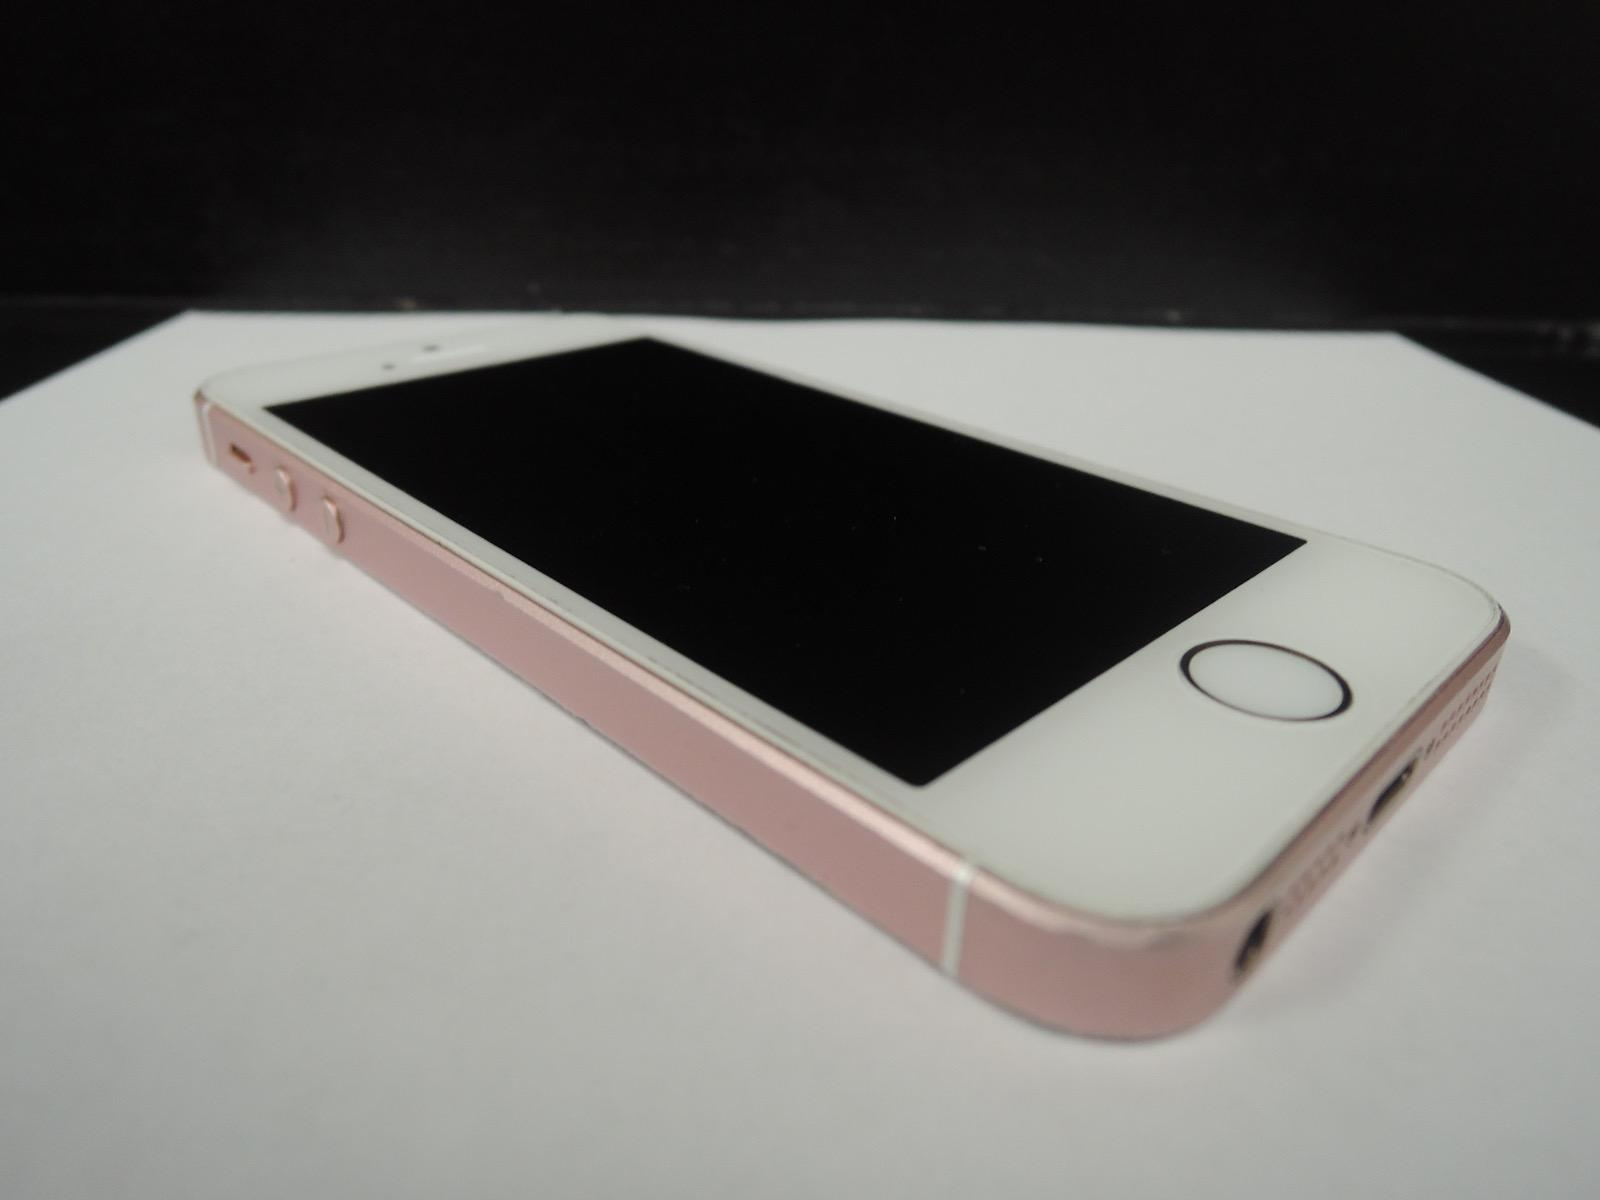 on sale 9884c 075d6 Apple iPhone SE 64GB Rose Gold